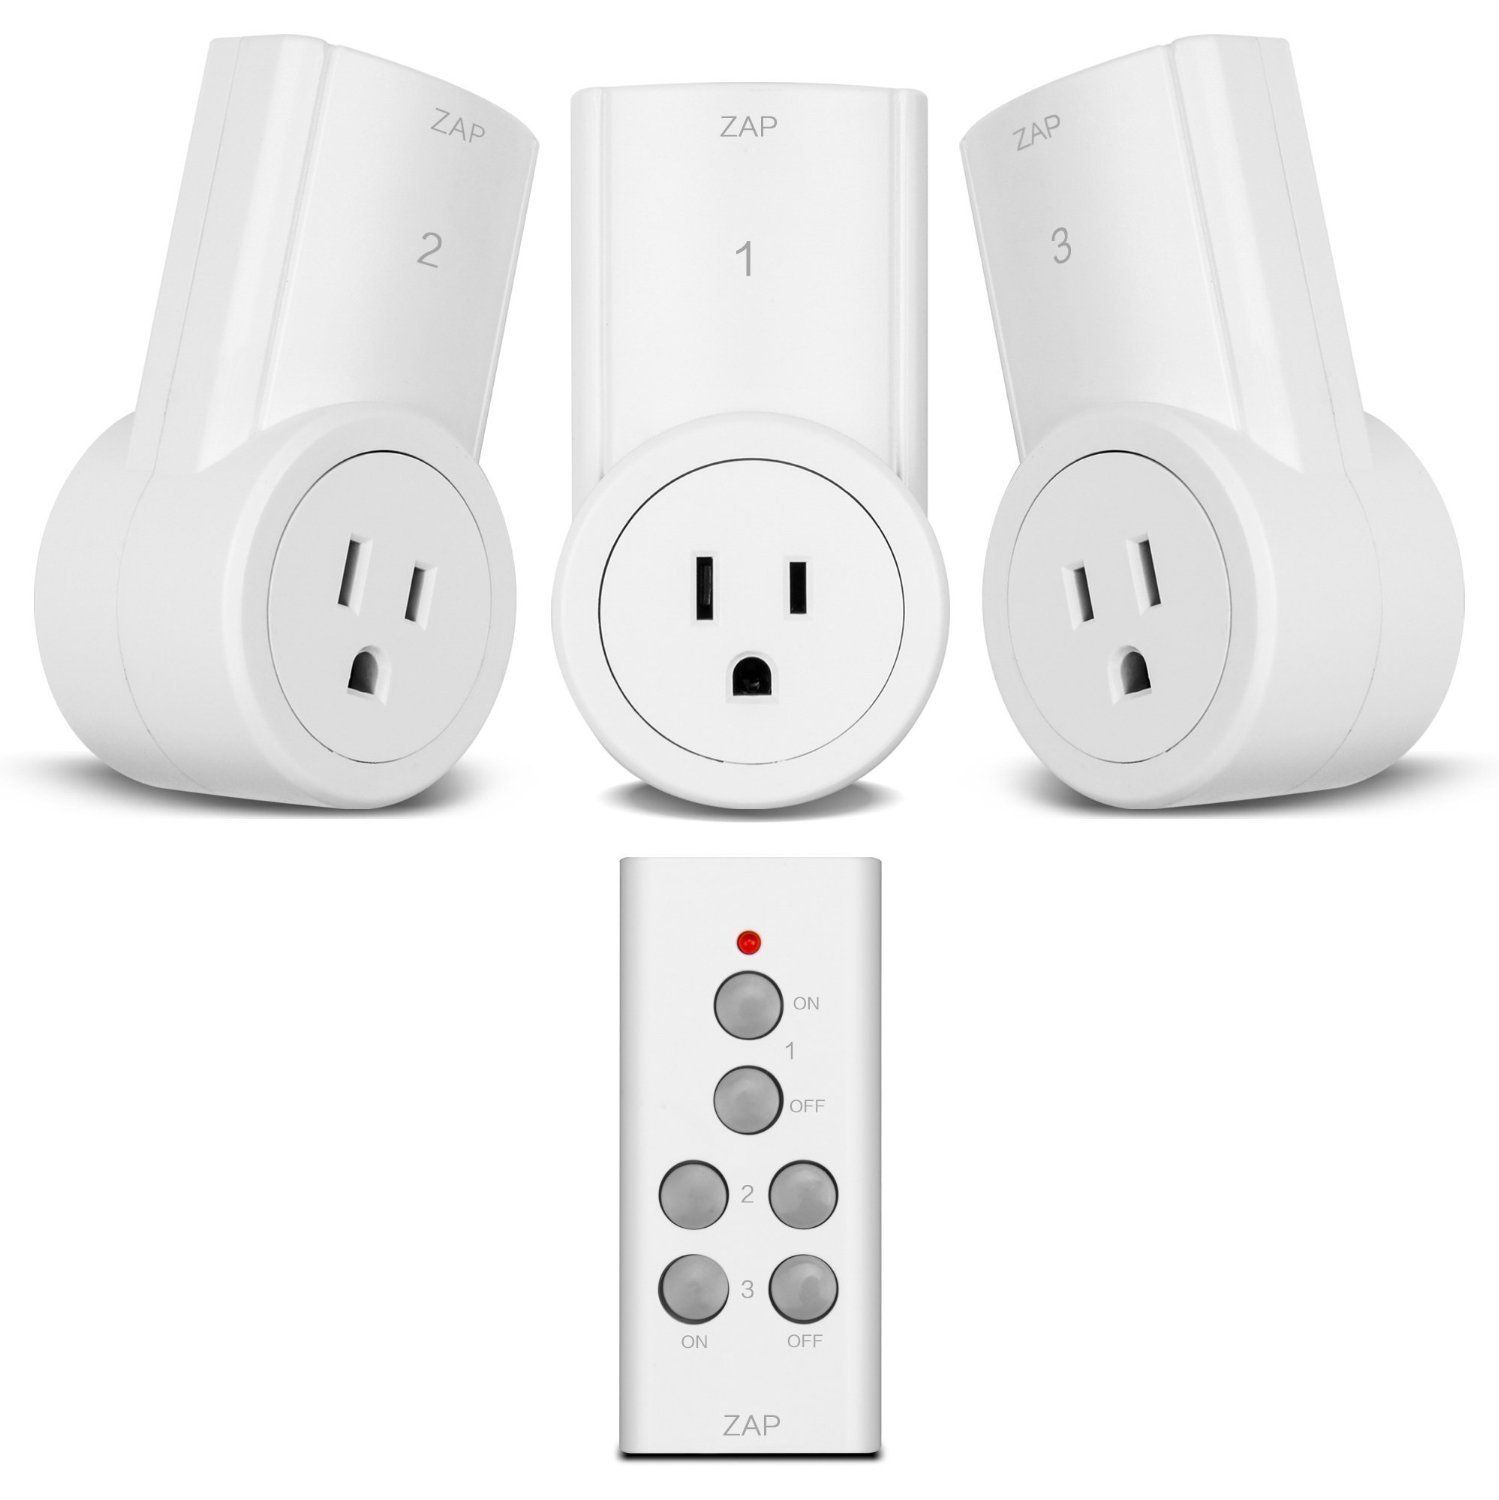 Amazon.com: Etekcity Wireless Remote Control Electrical Outlet ...